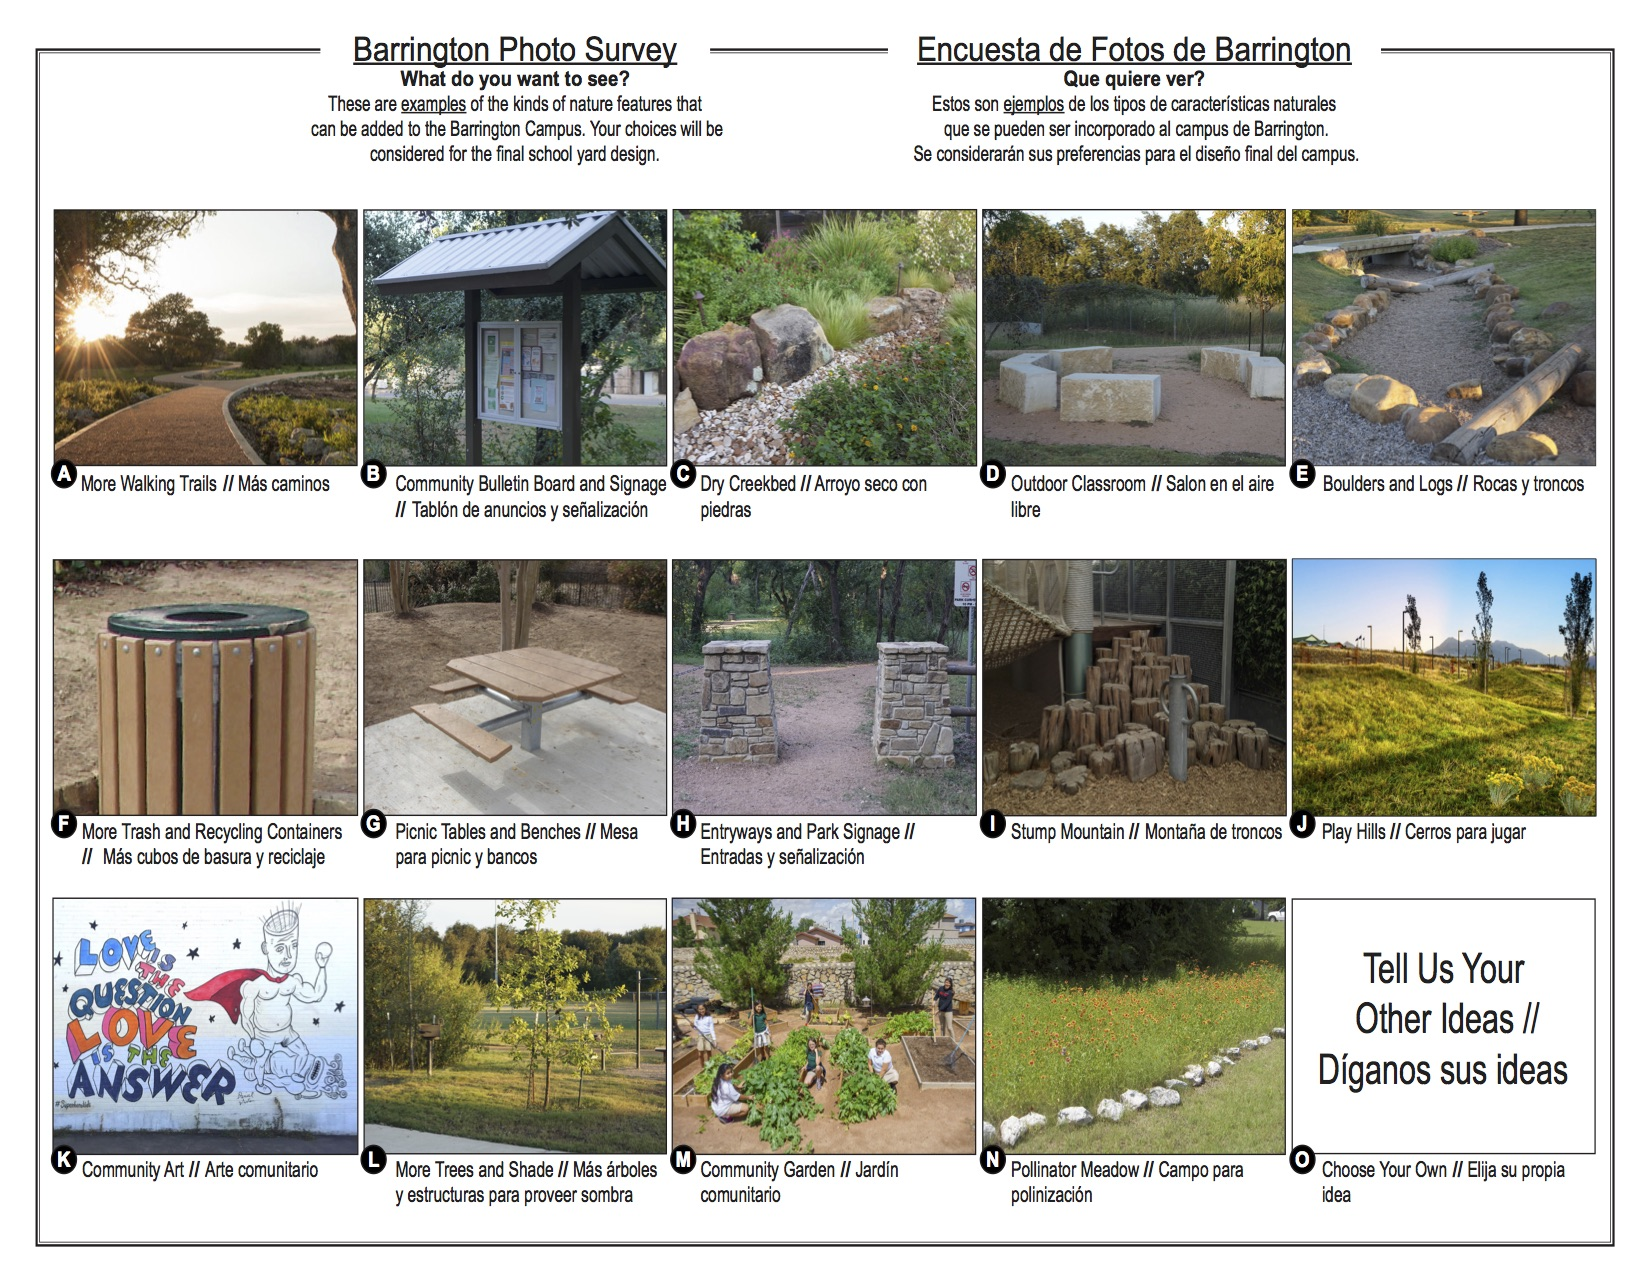 These are EXAMPLES of the kinds of nature features that can be added to the Barrington Campus. Your choices will be considered for the final school yard design. <br><br>Estos son EJEMPLOS de los tipos de caracteristicas naturales que se pueden ser incorporado al campus de Barrington. Se consideraran sus preferencias para el diseno final el campus.